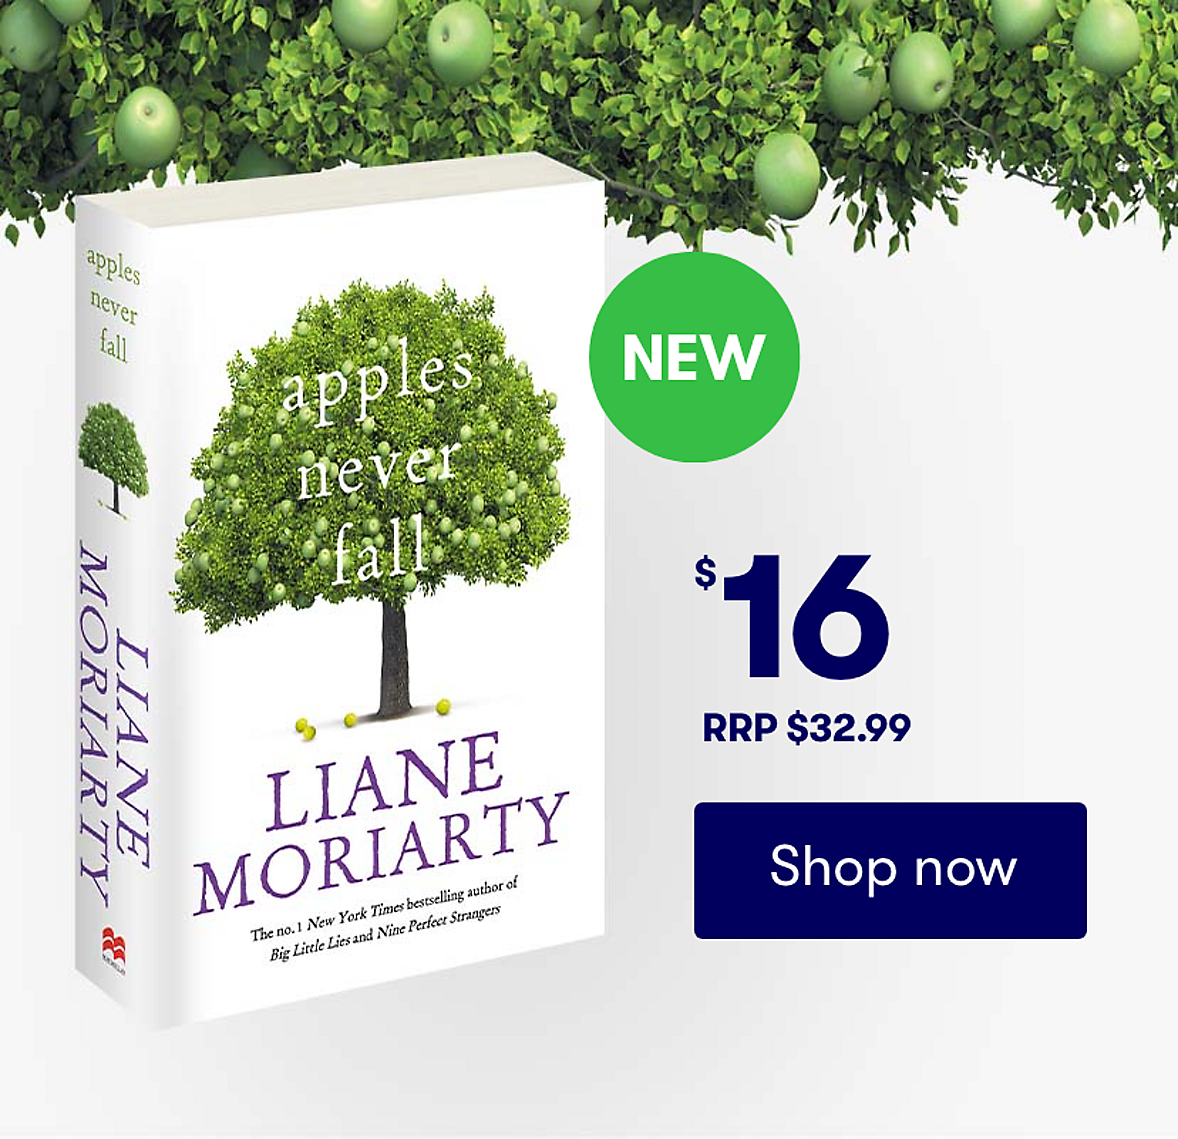 NEW Apples Never Fall by Liane Moriarty now available Shop now